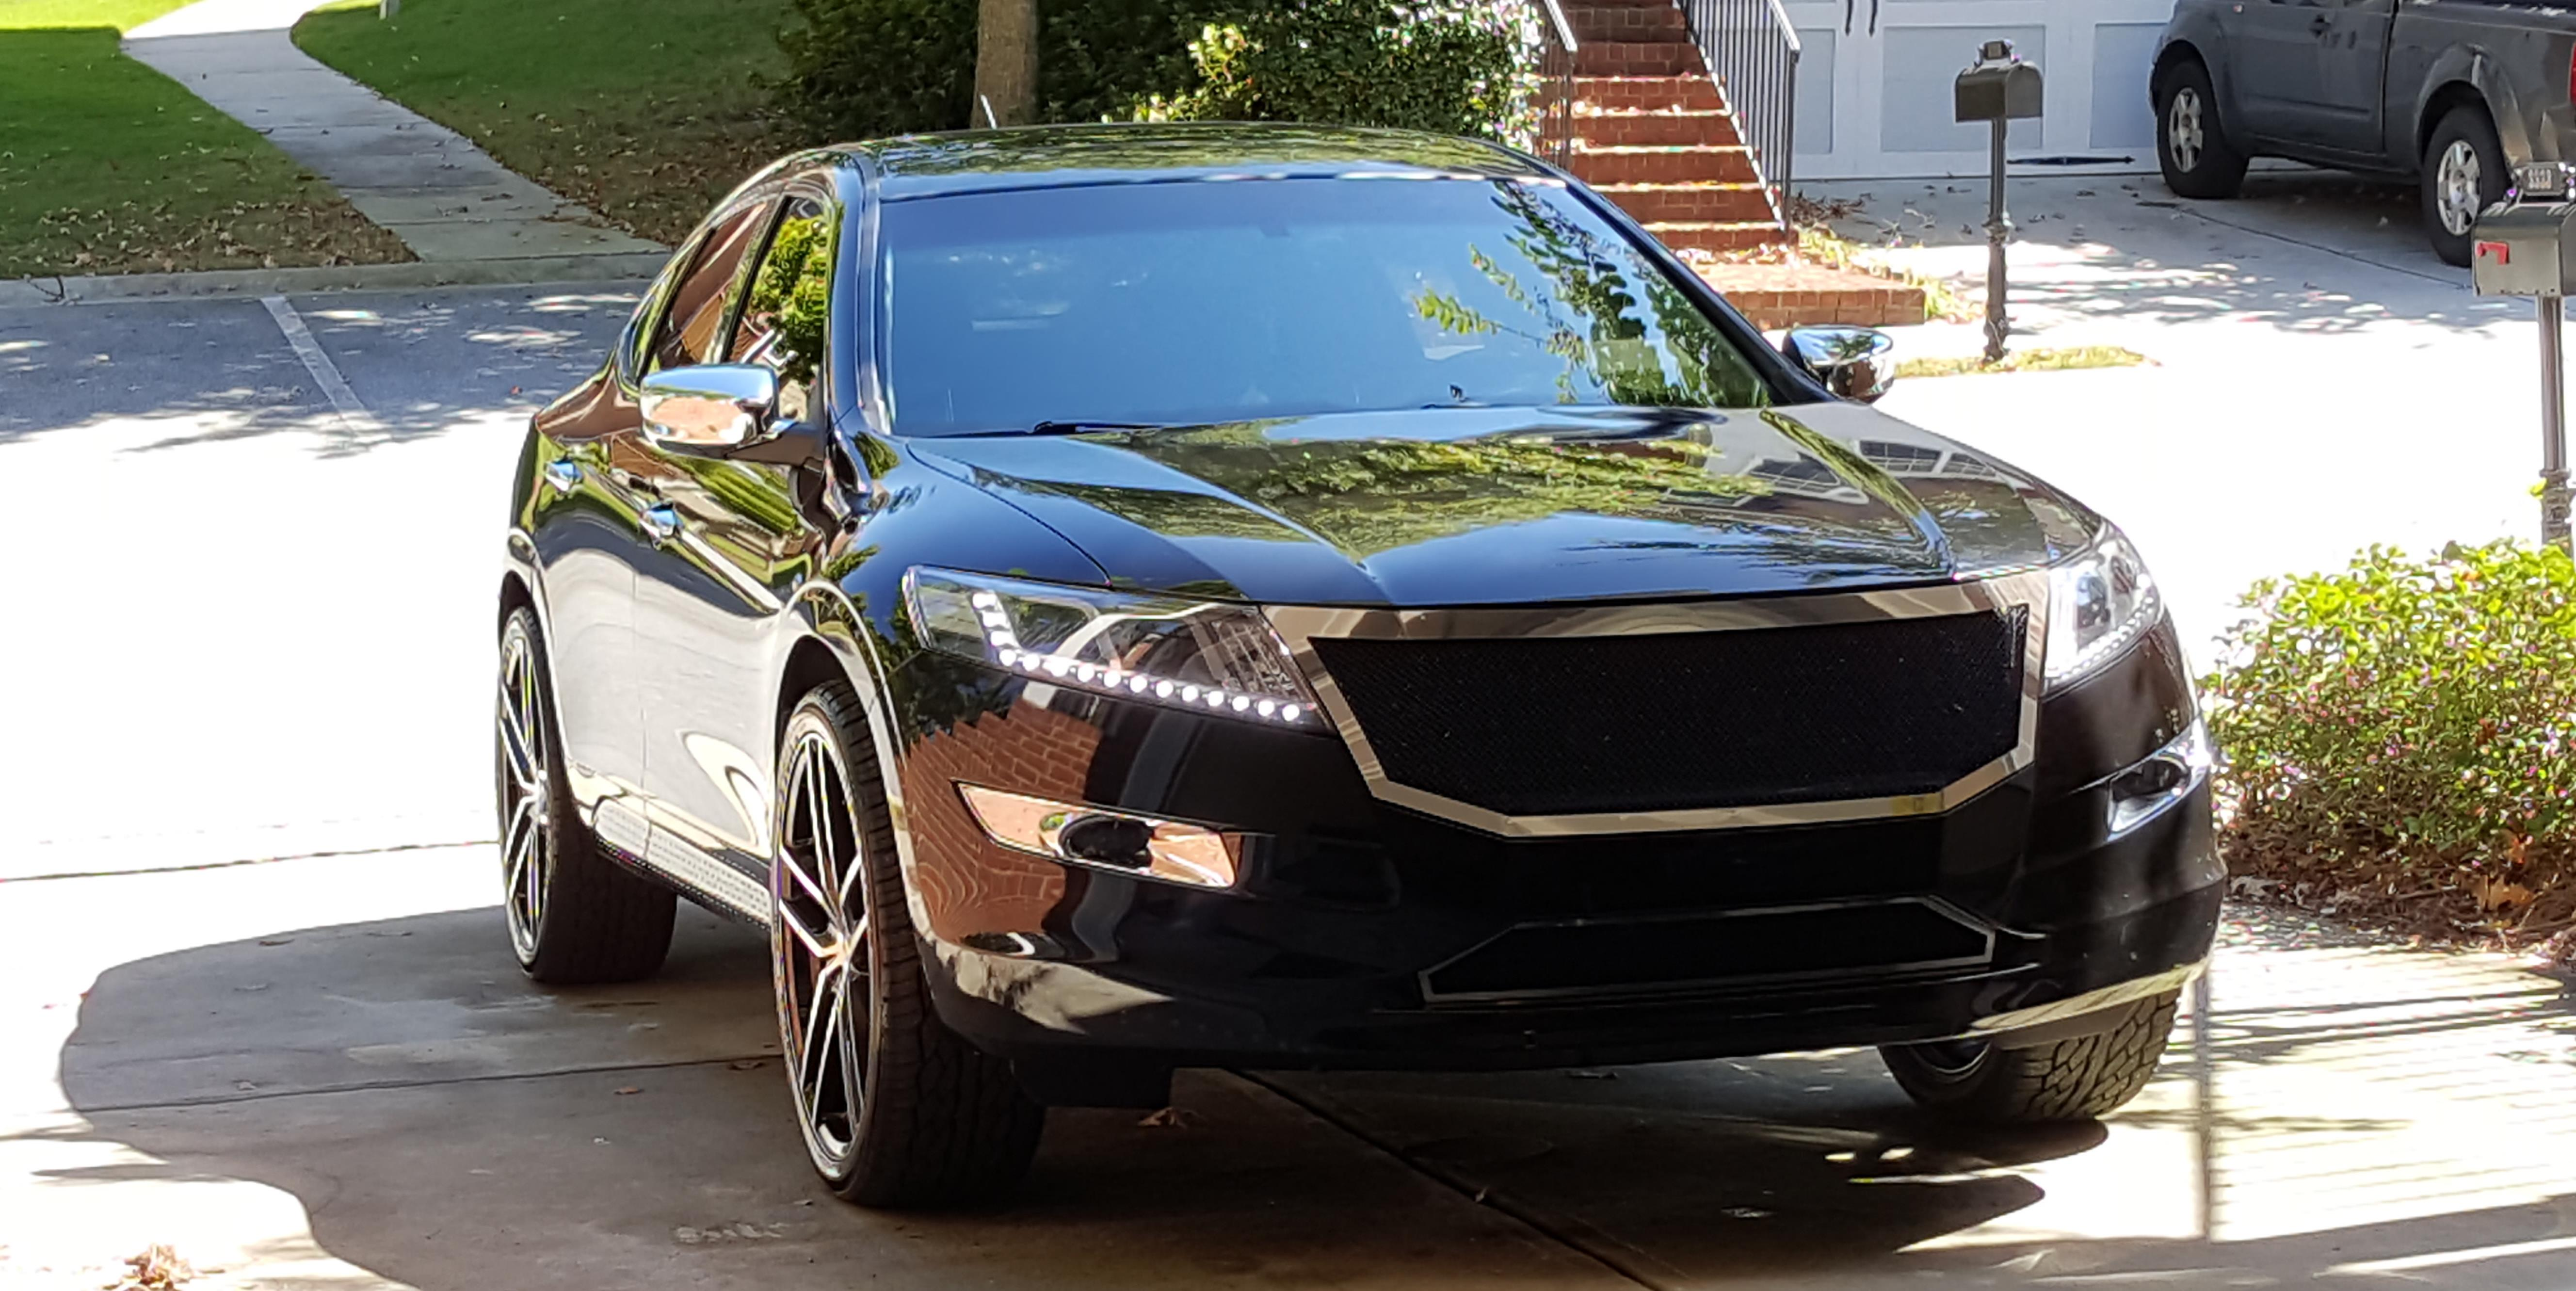 S3LFMADE_S3LFPAID's 2010 Honda Accord Crosstour